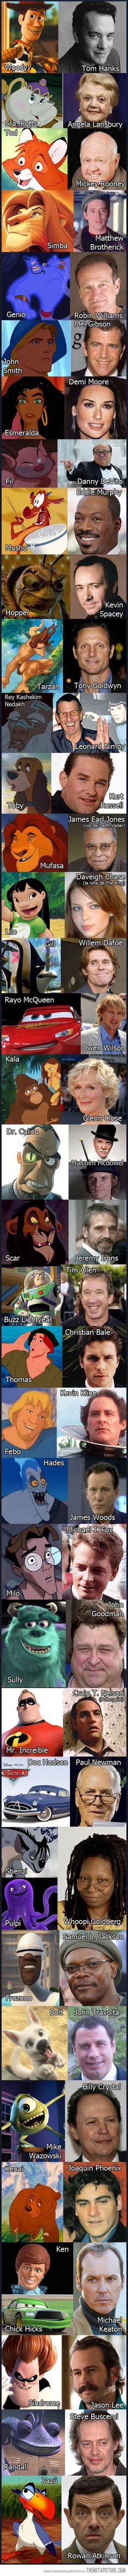 Disney characters and their real faces… i had no idea on some.